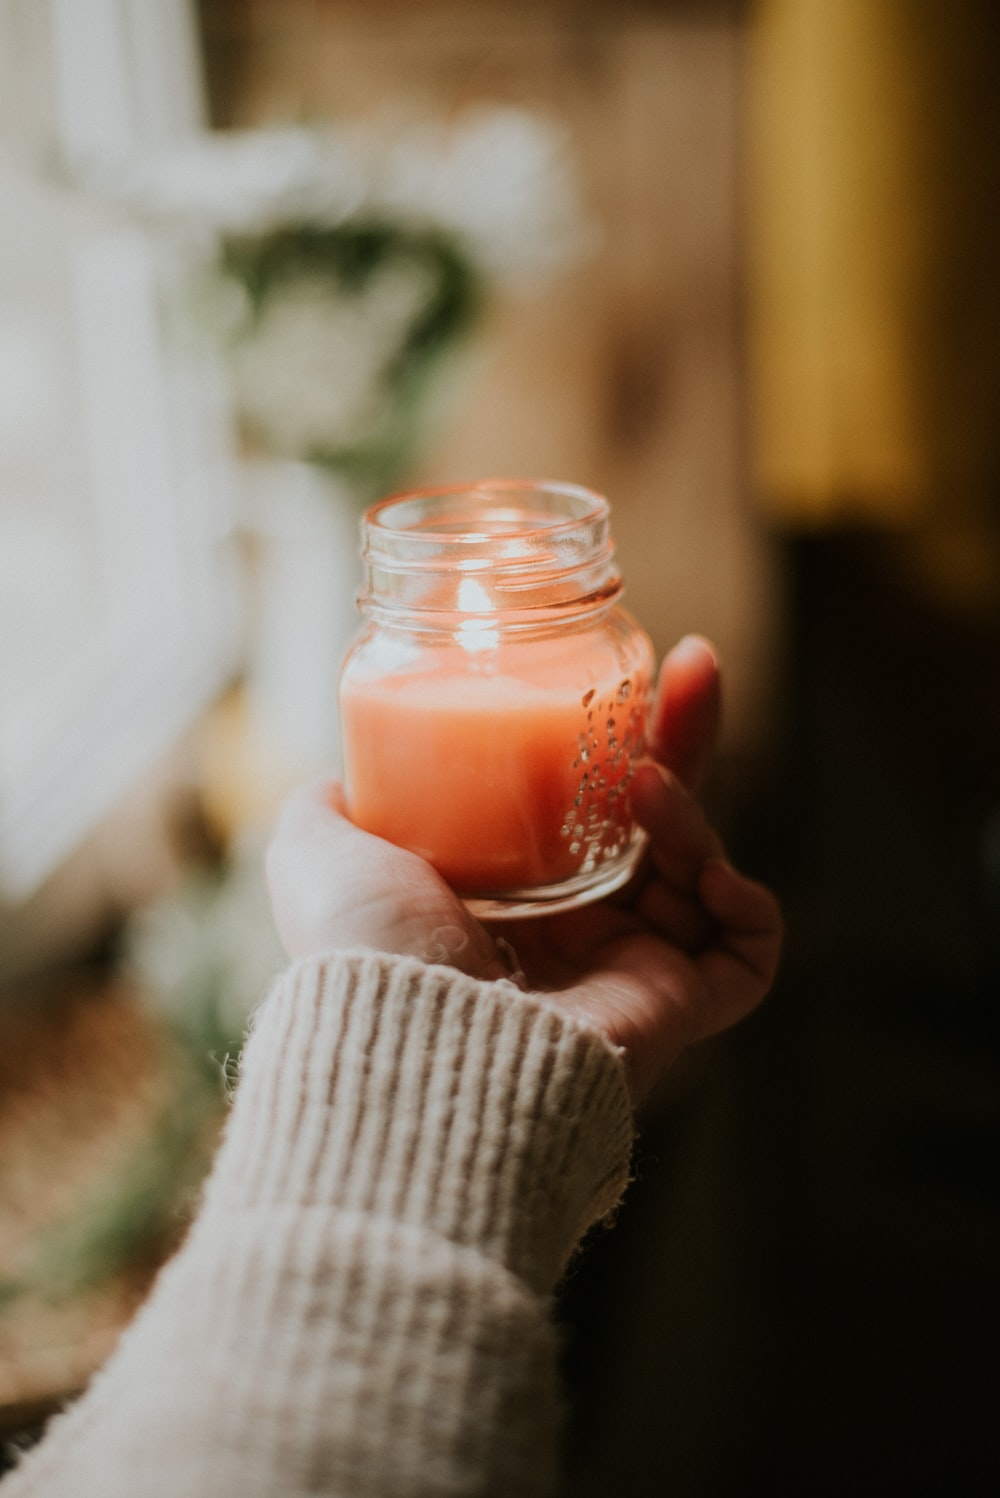 person holding clear glass candle holder with red candle